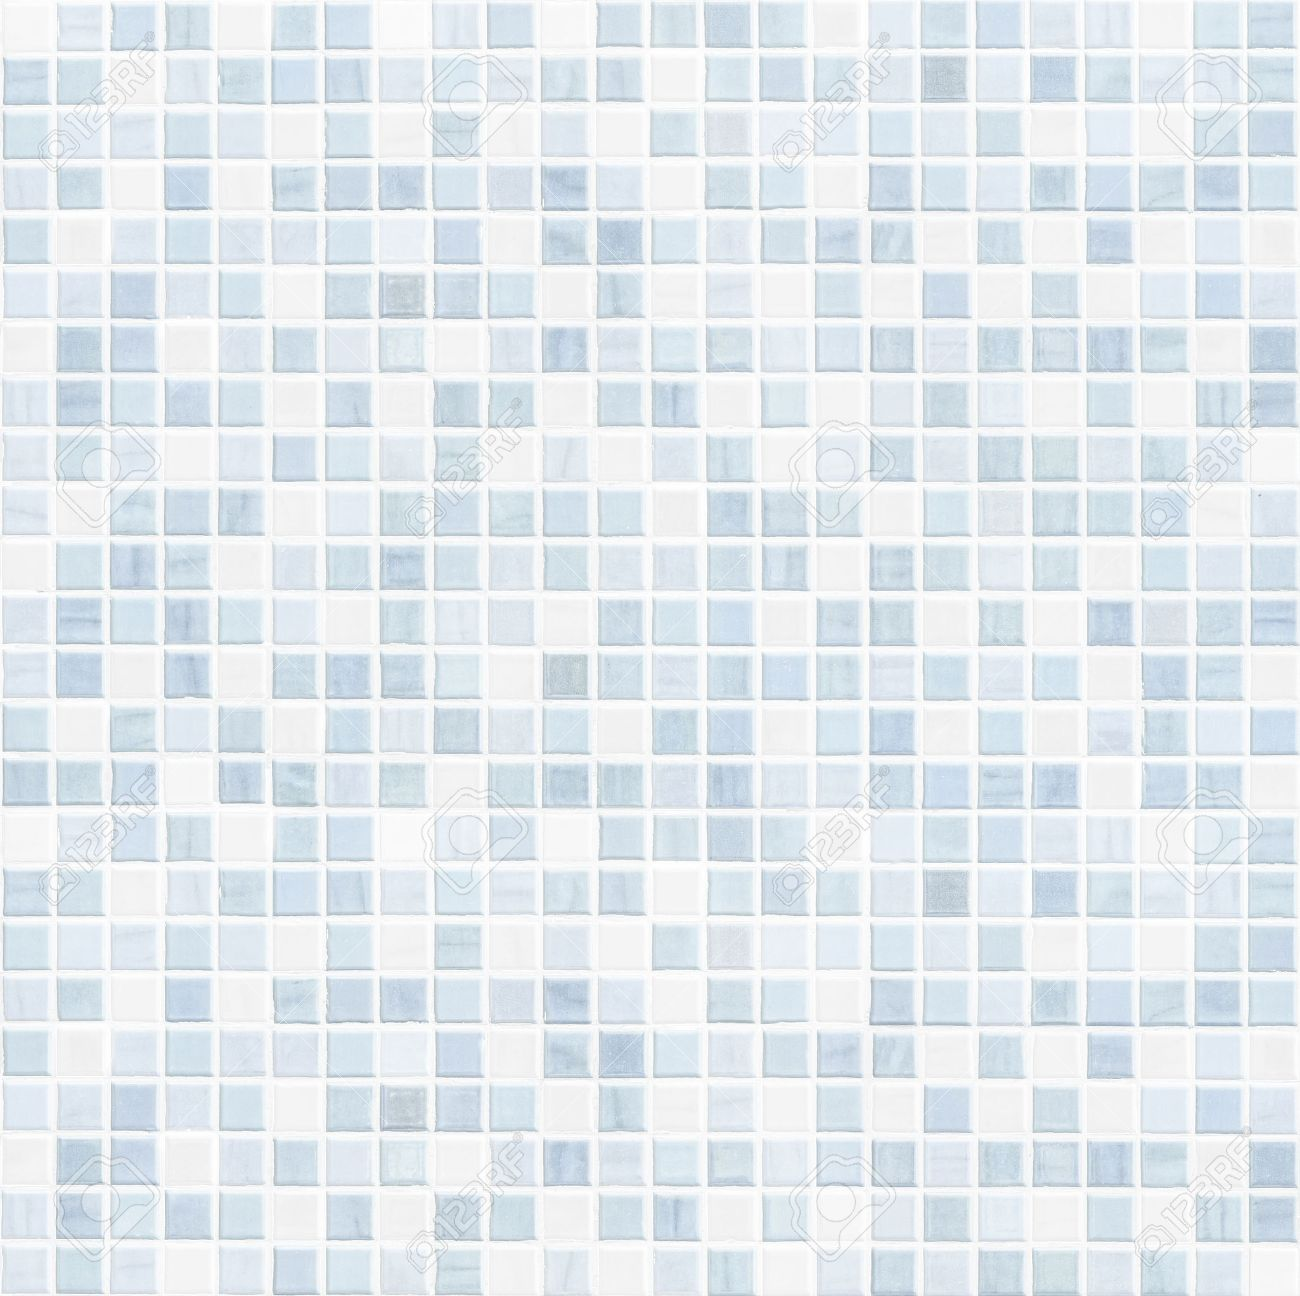 Ceramic Tile Bathroom Blue Tile Wall High Resolution Ceramic Tile Bathroom Wall